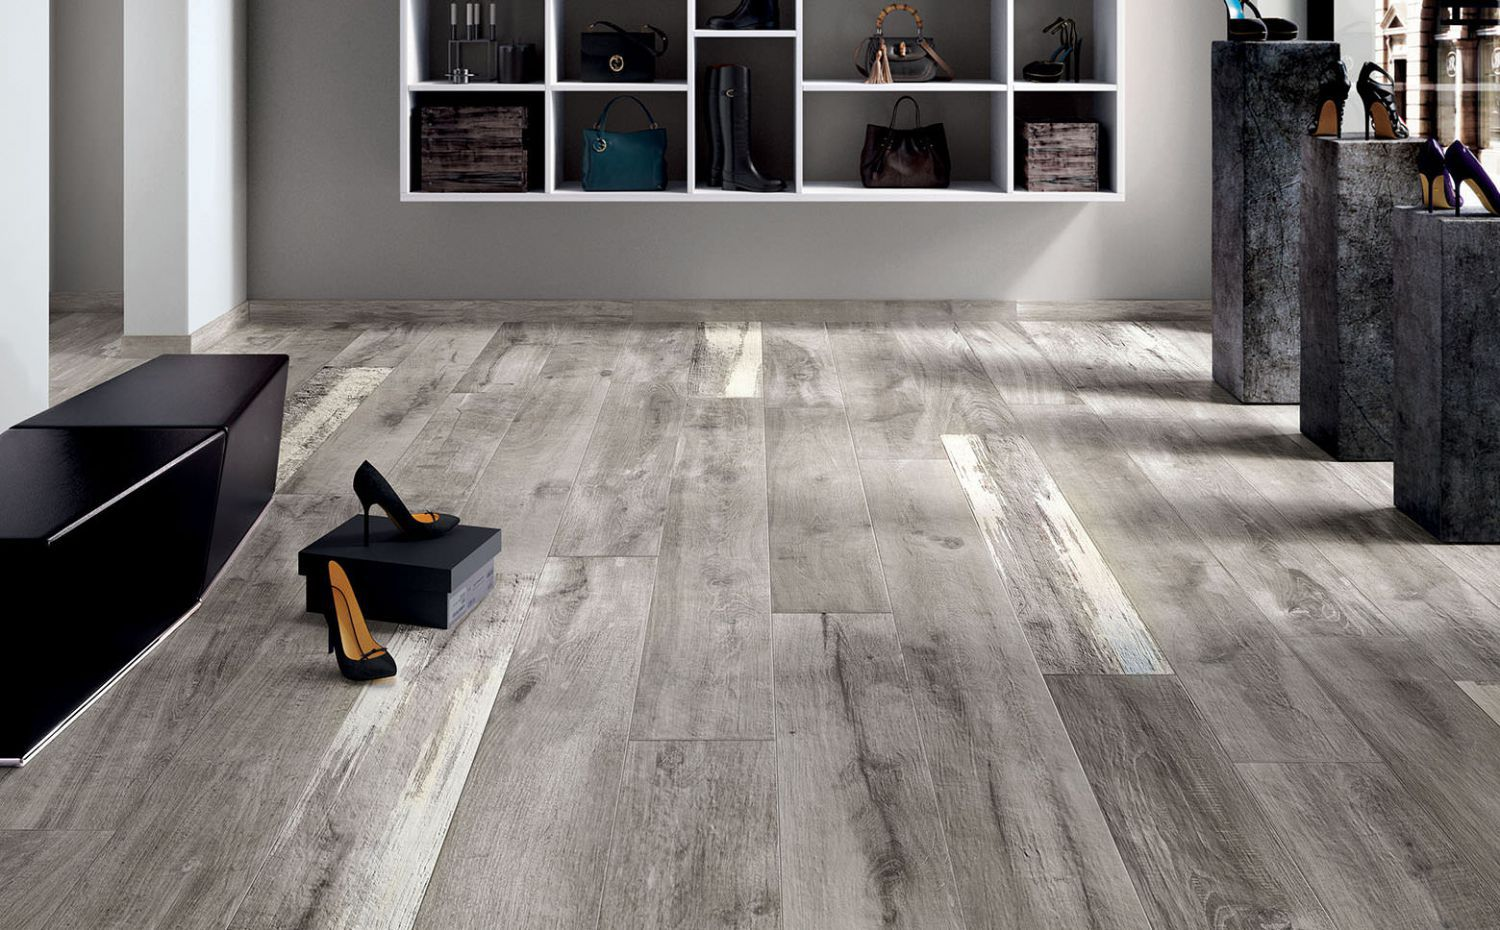 Let Woodgrain Porcelain Tiles Work For Your Home The